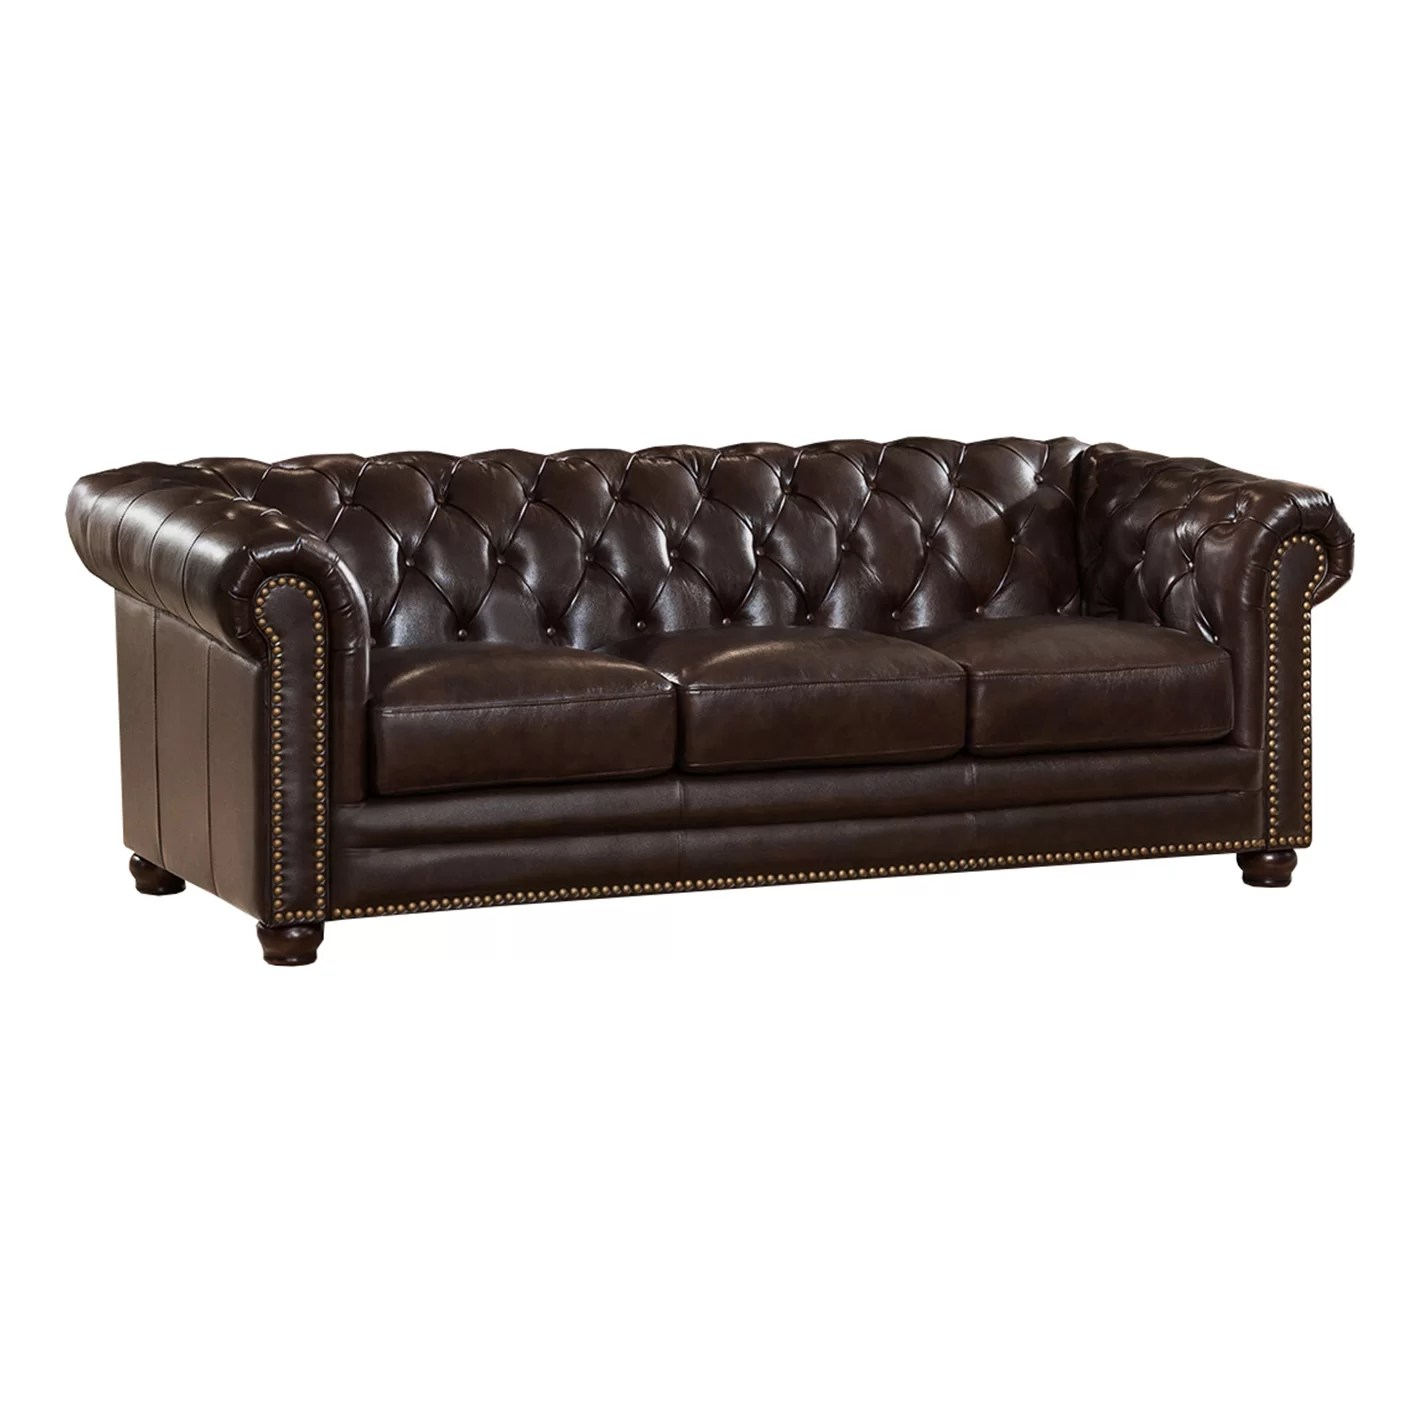 Chesterfield Sofa Amax Kensington Top Grain Leather Chesterfield Sofa And